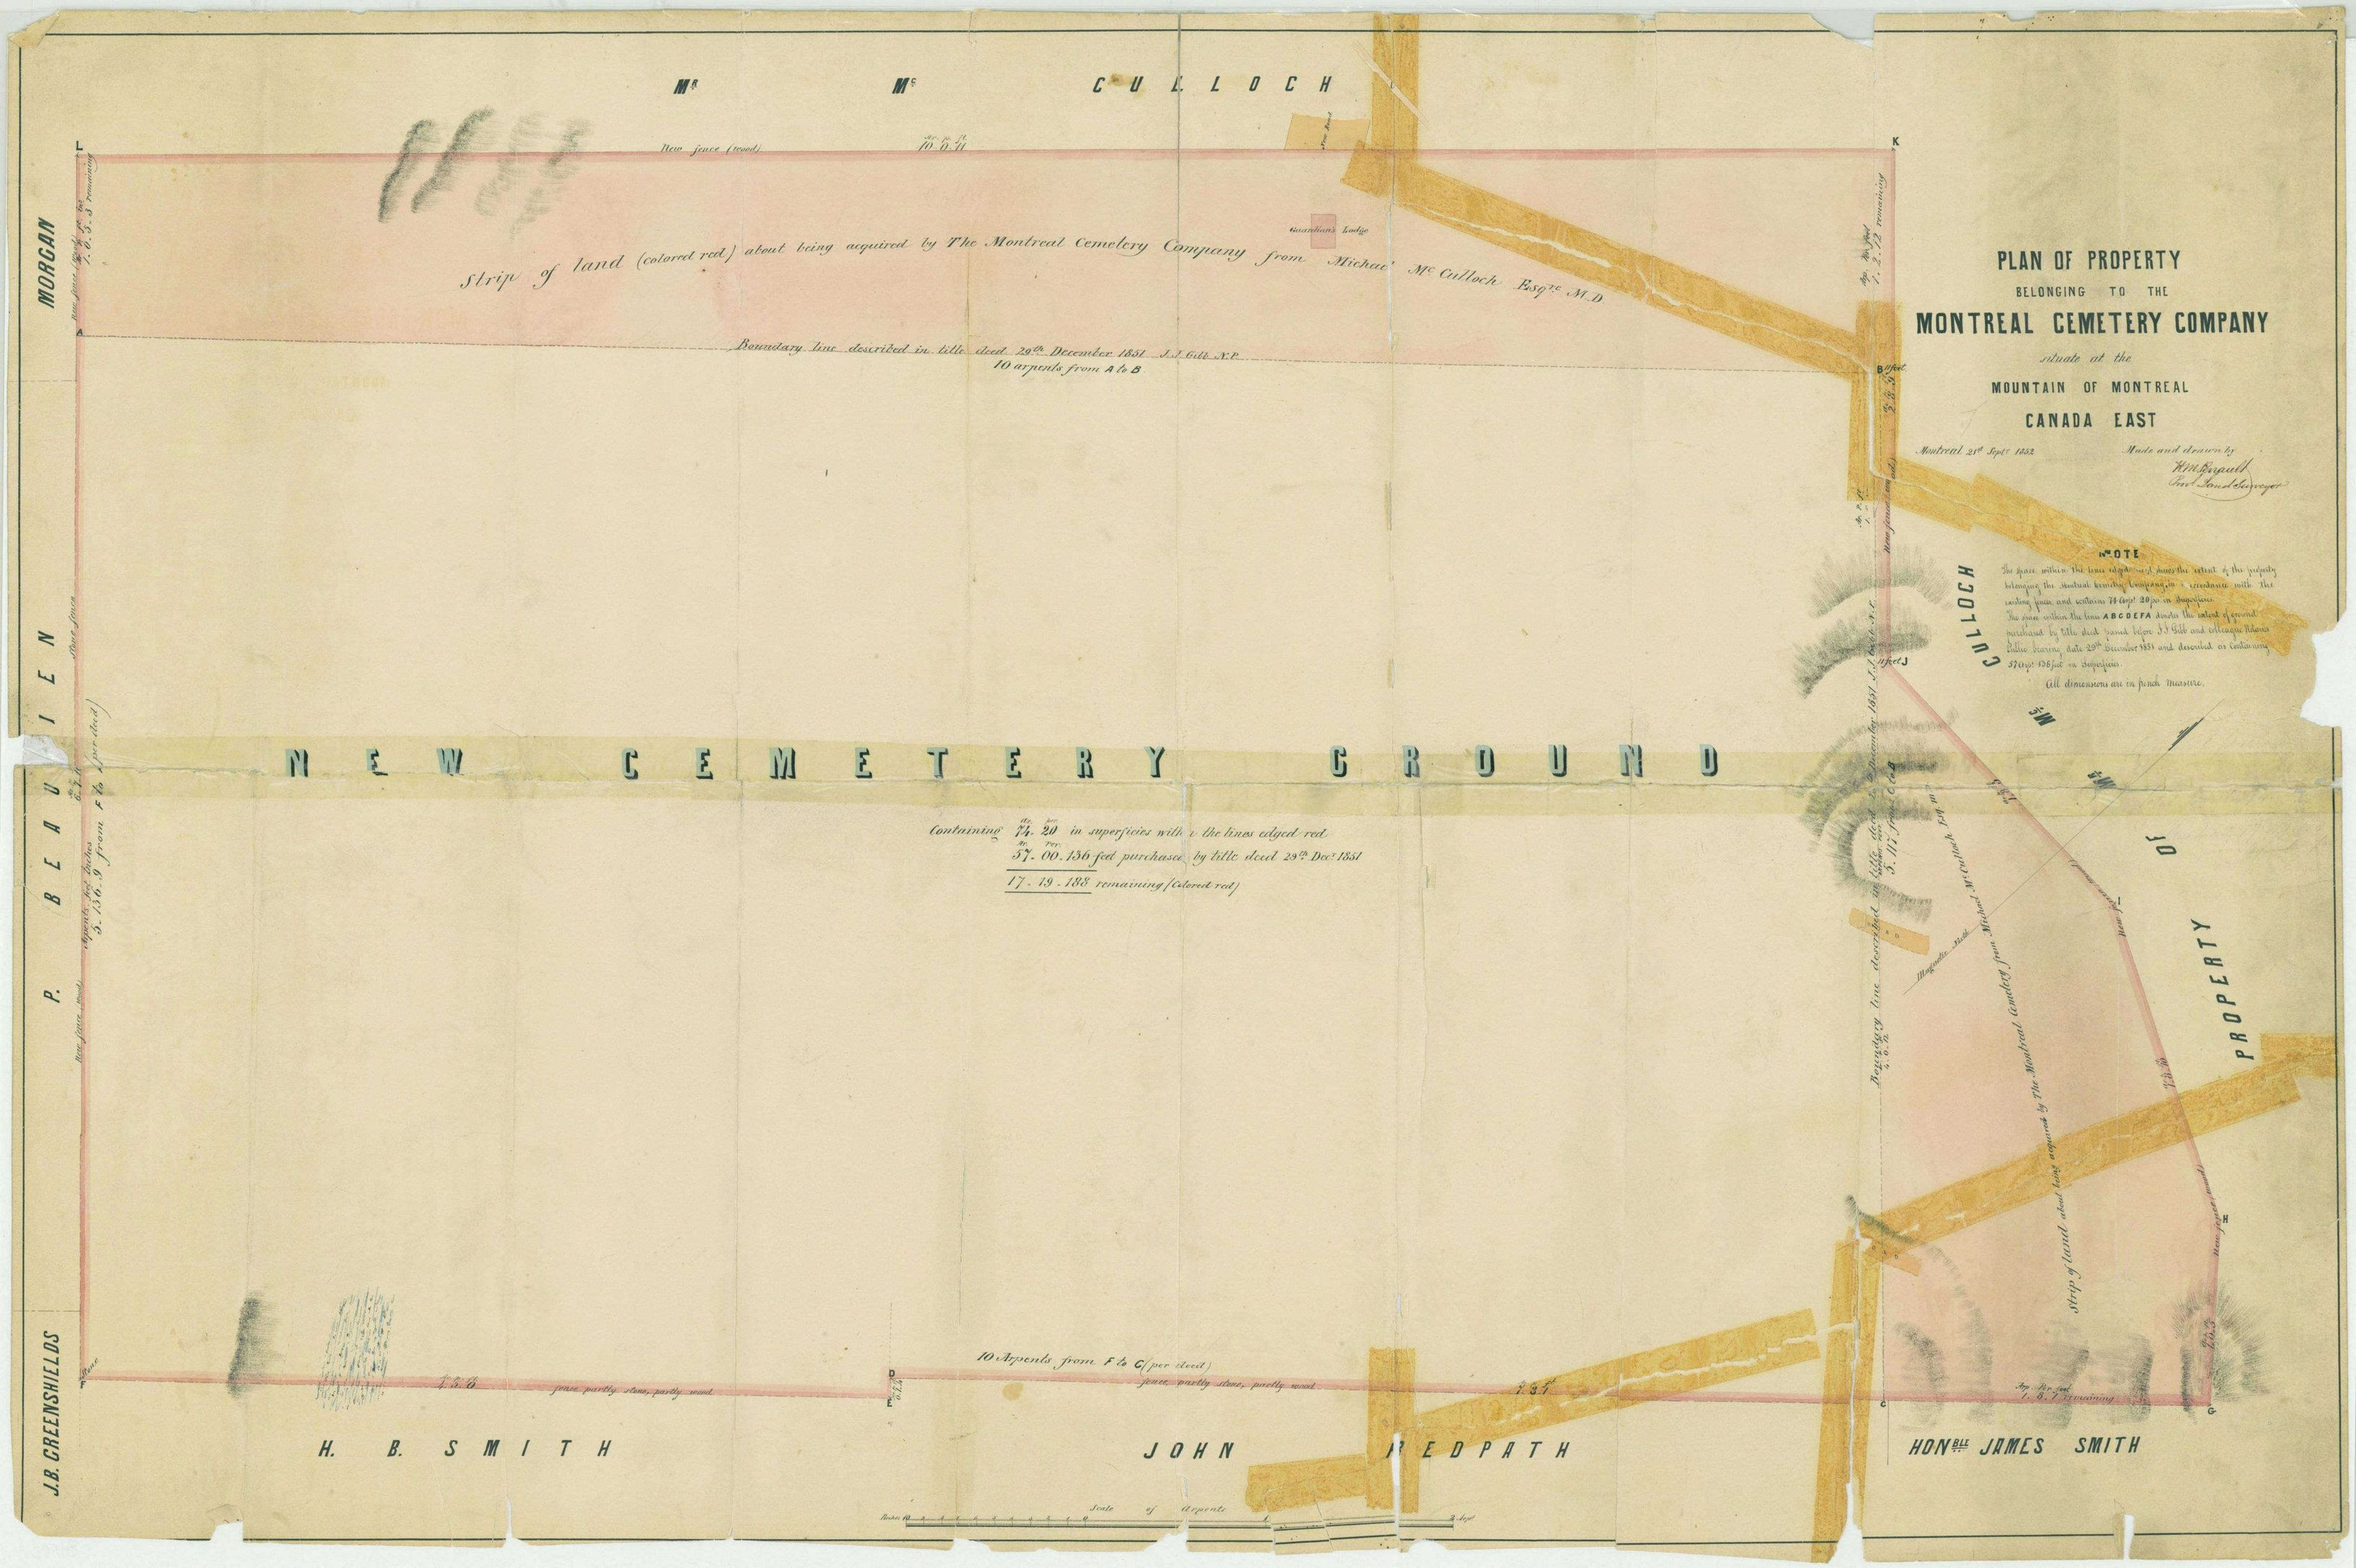 Plan of property belonging to the Montreal Cemetery Company situate at the Mountain of Montreal Canada East _03